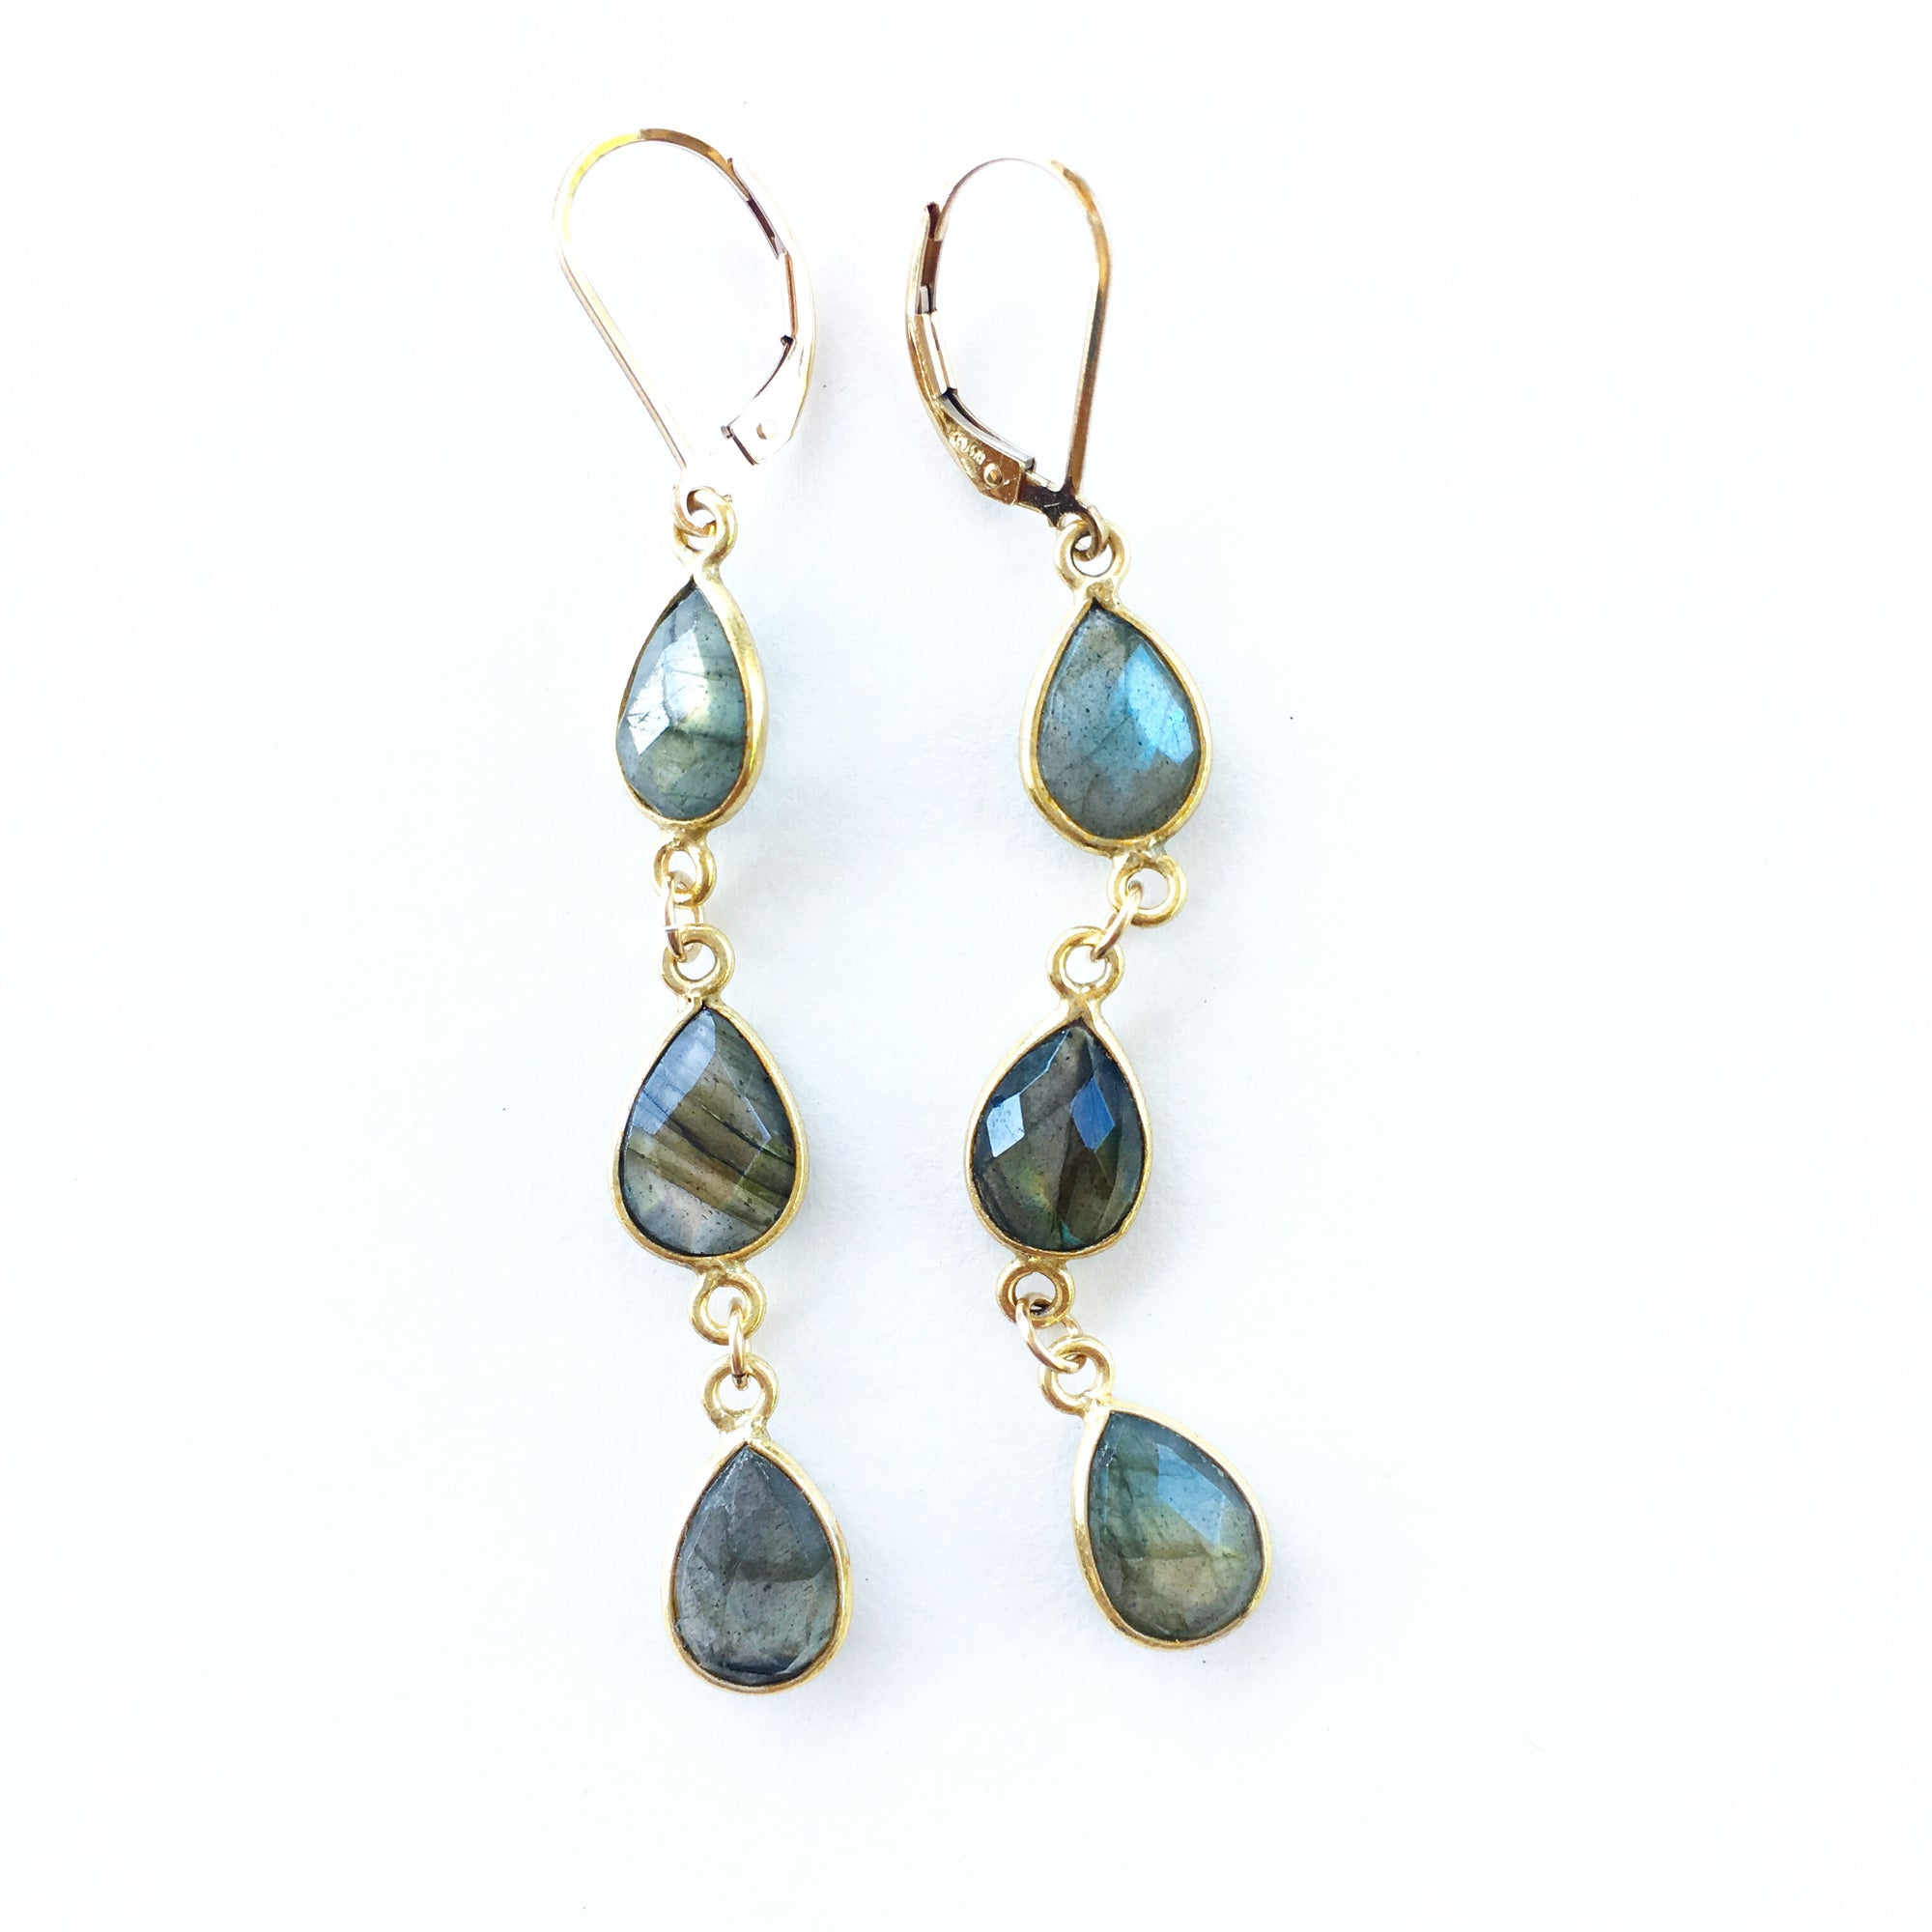 Hamptons Labradorite Earrings